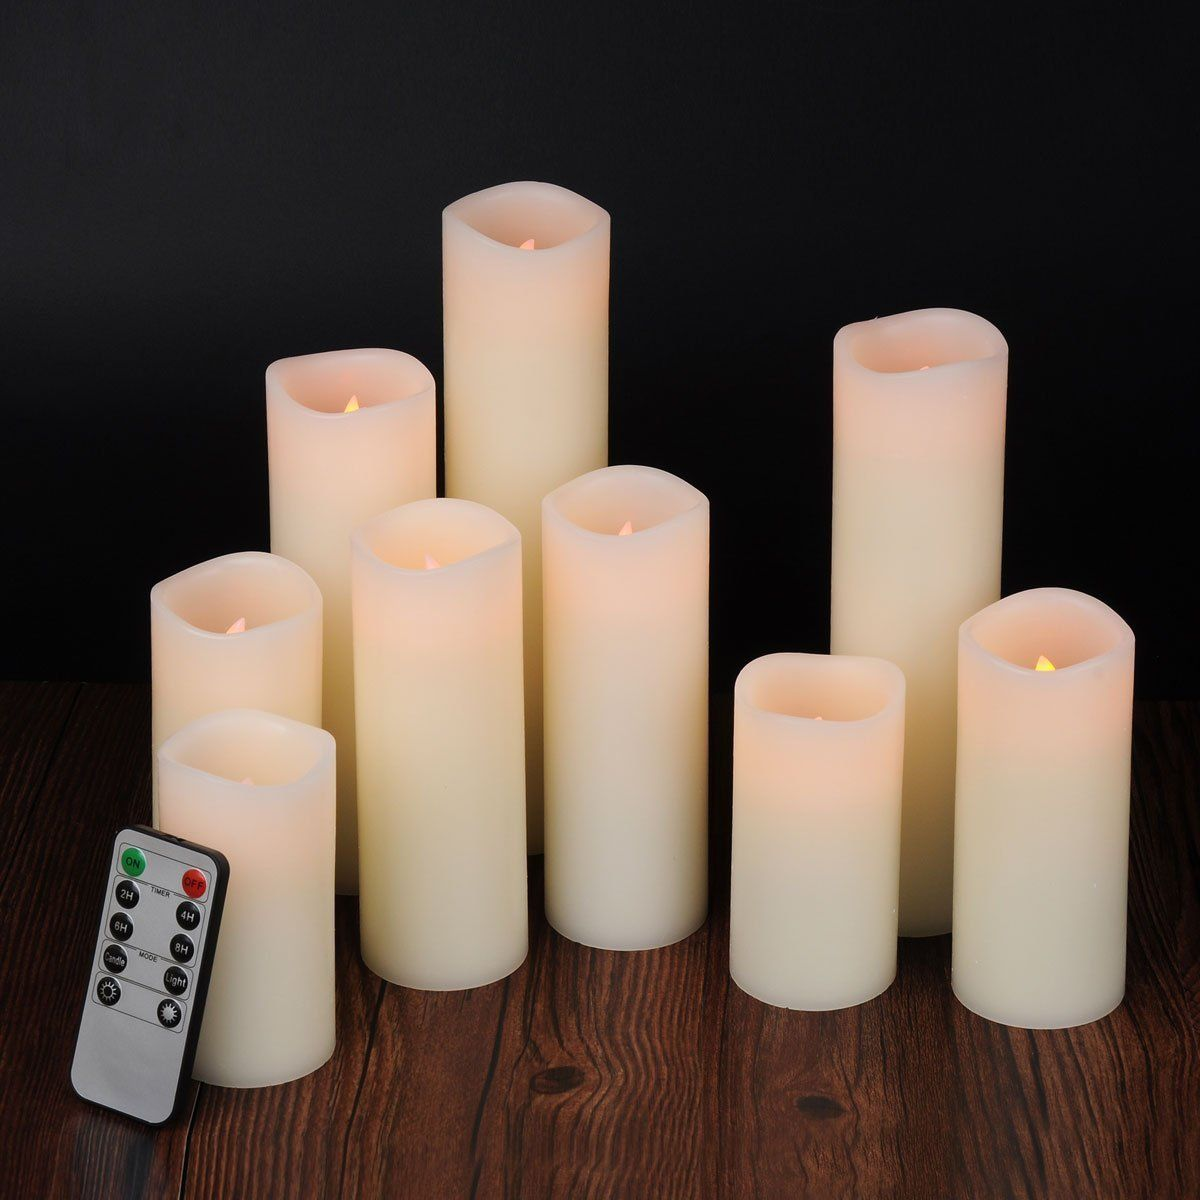 Amazon Com Ry King 4 5 6 7 8 9 Pillar Flickering Flameless Led Candles With 10 Key Remote Timer Set Of 9 Hom Flameless Led Candles Led Candles Candles